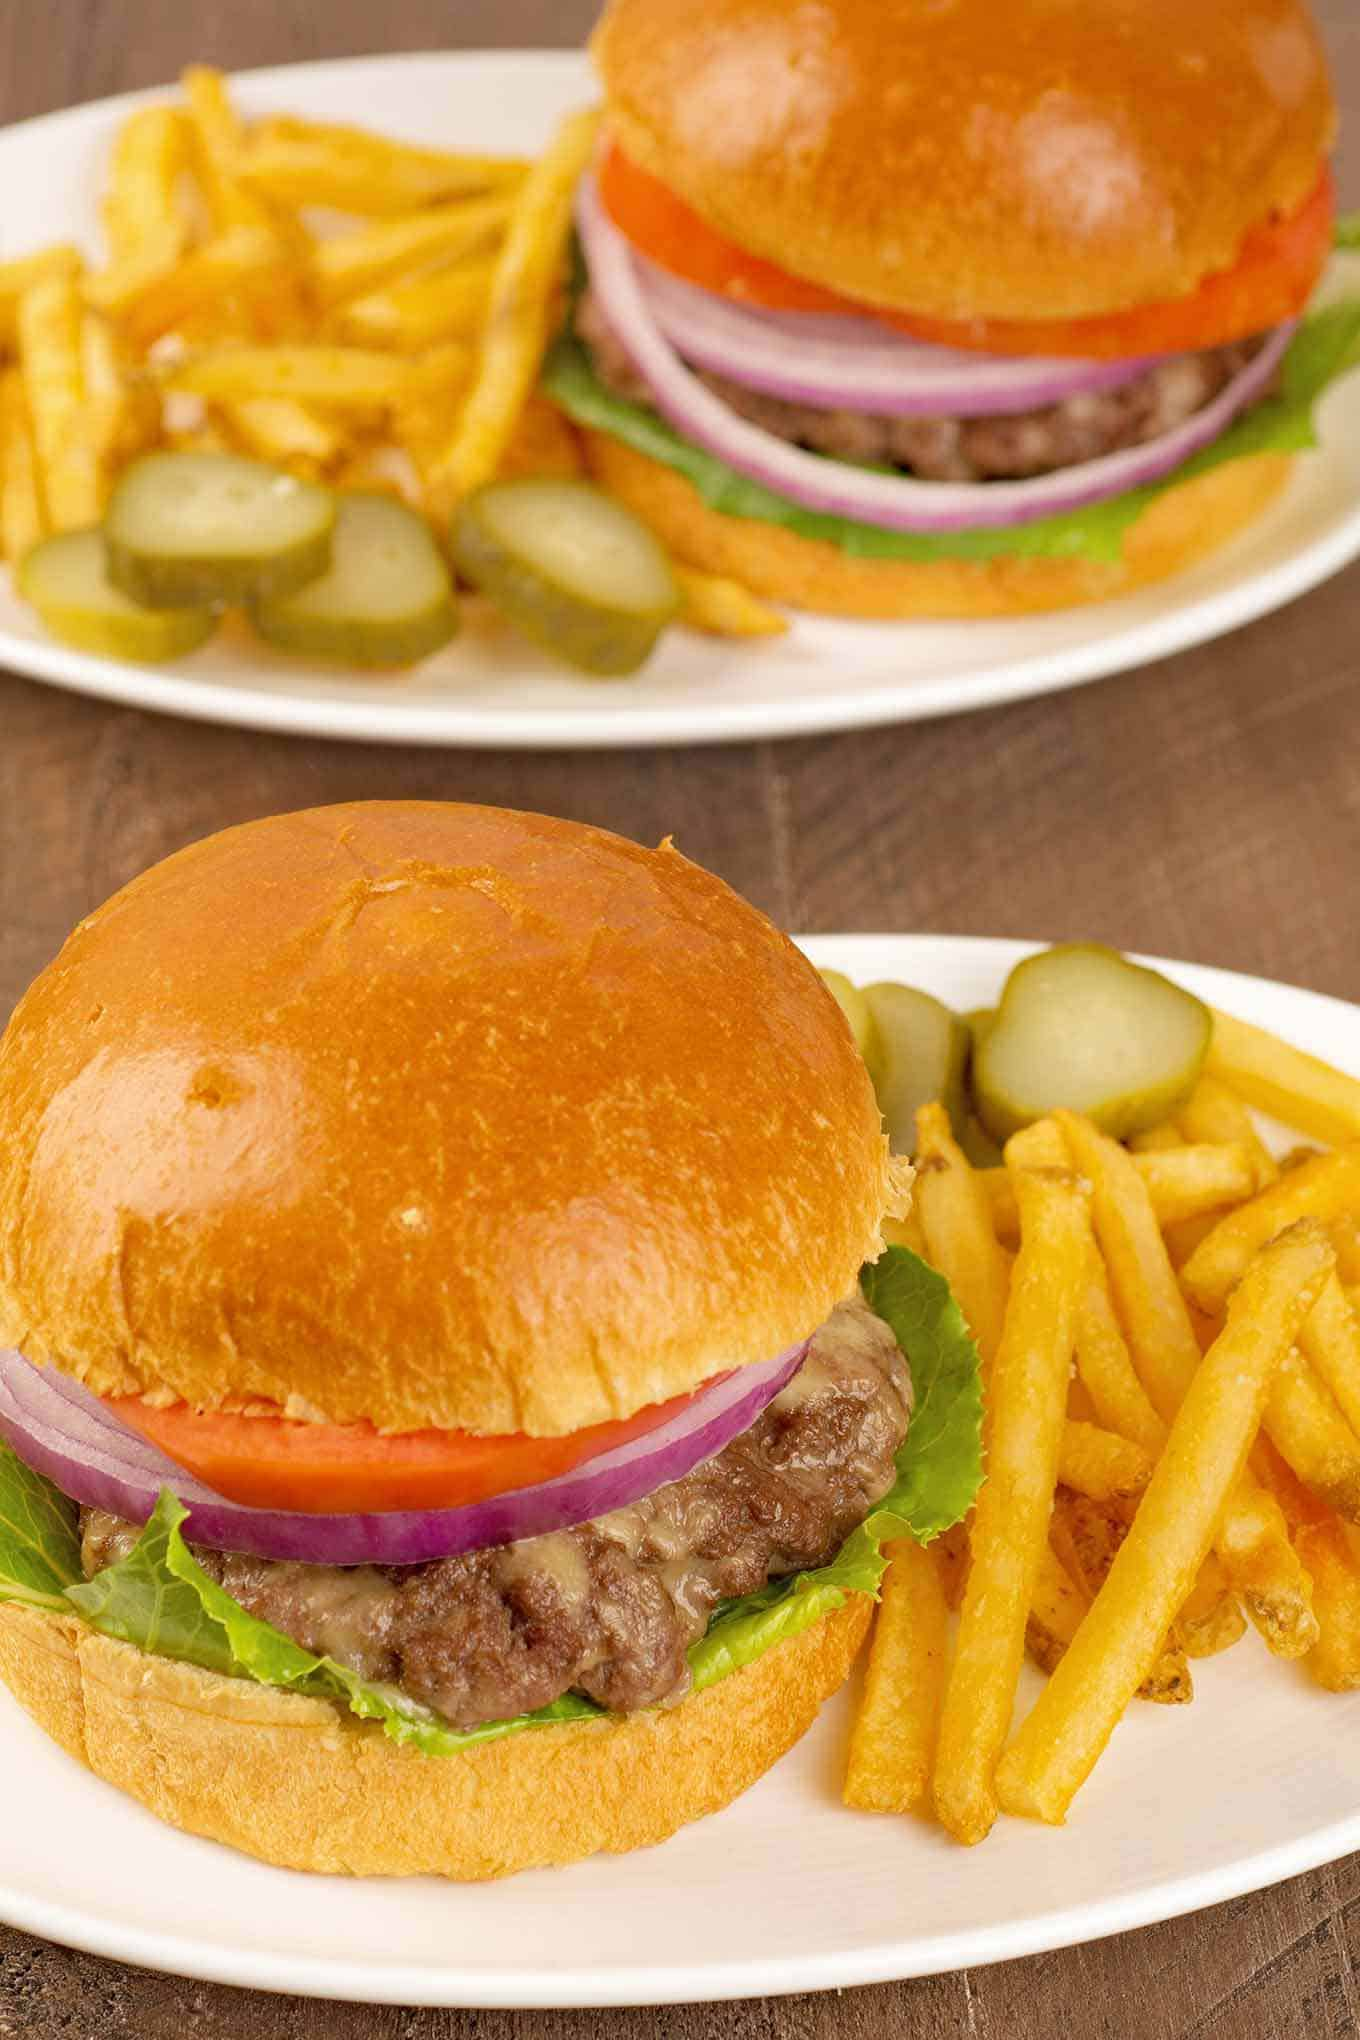 Two plated servings of burgers and fries.